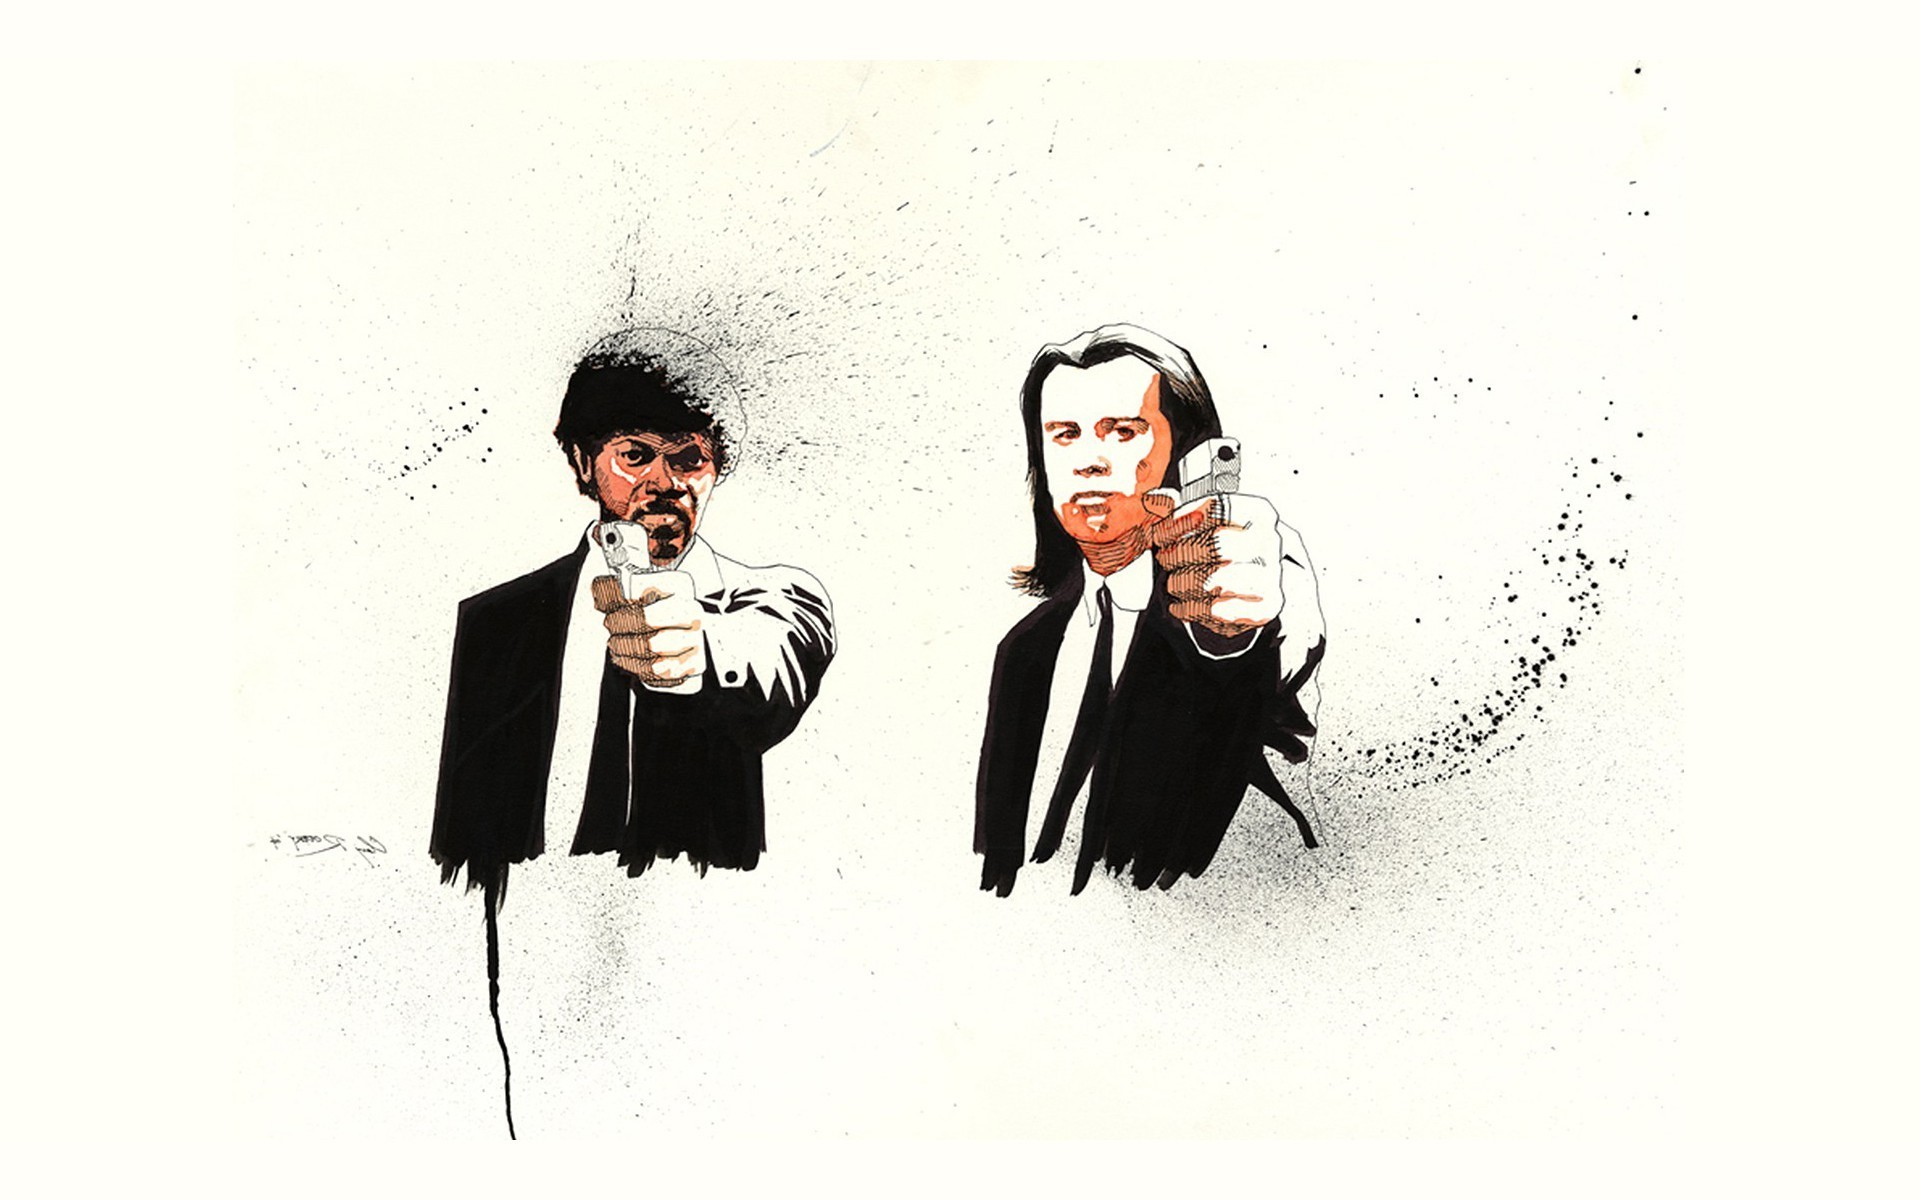 1920x1200 Pulp Fiction, Fan Art, Quentin Tarantino, Movies, Samuel L. Jackson Wallpapers  HD / Desktop and Mobile Backgrounds